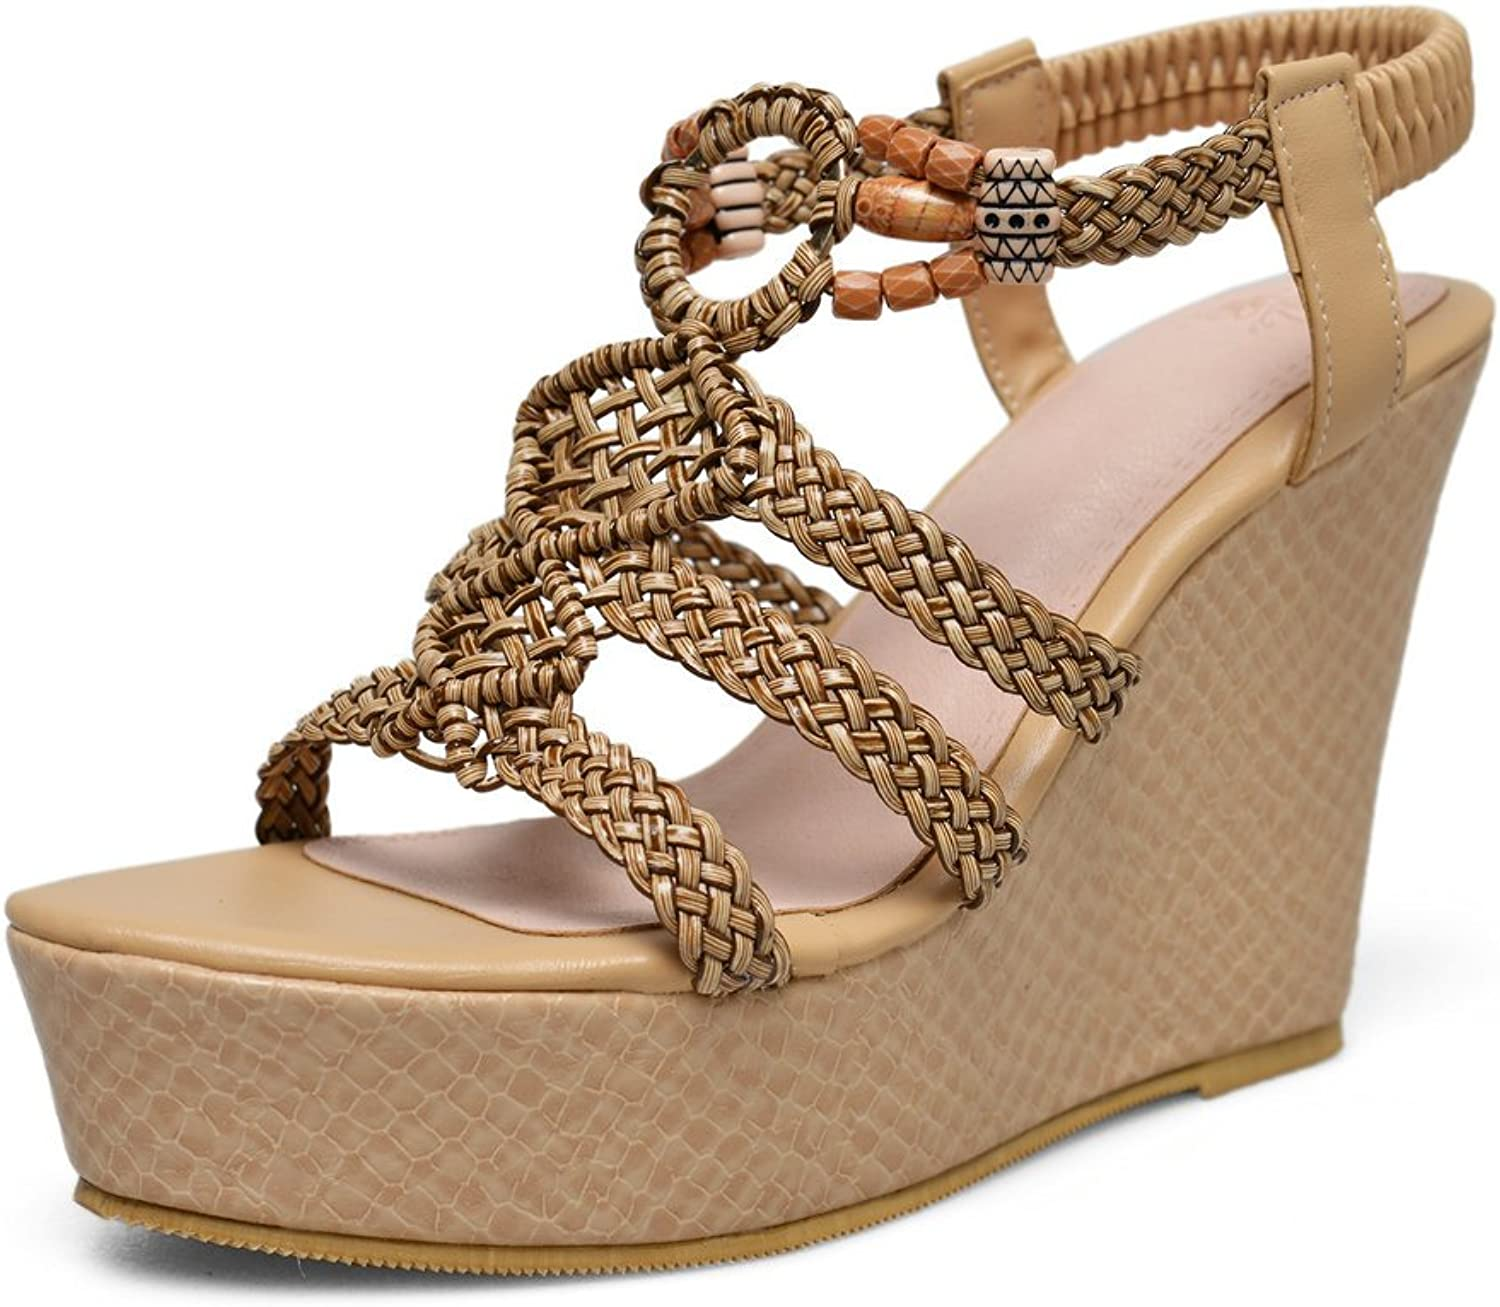 AnMengXinLing Wedge Sandals Women Platform T-Strap High Heel Leather Ankle Strap Open Toe Bohemia Casual shoes